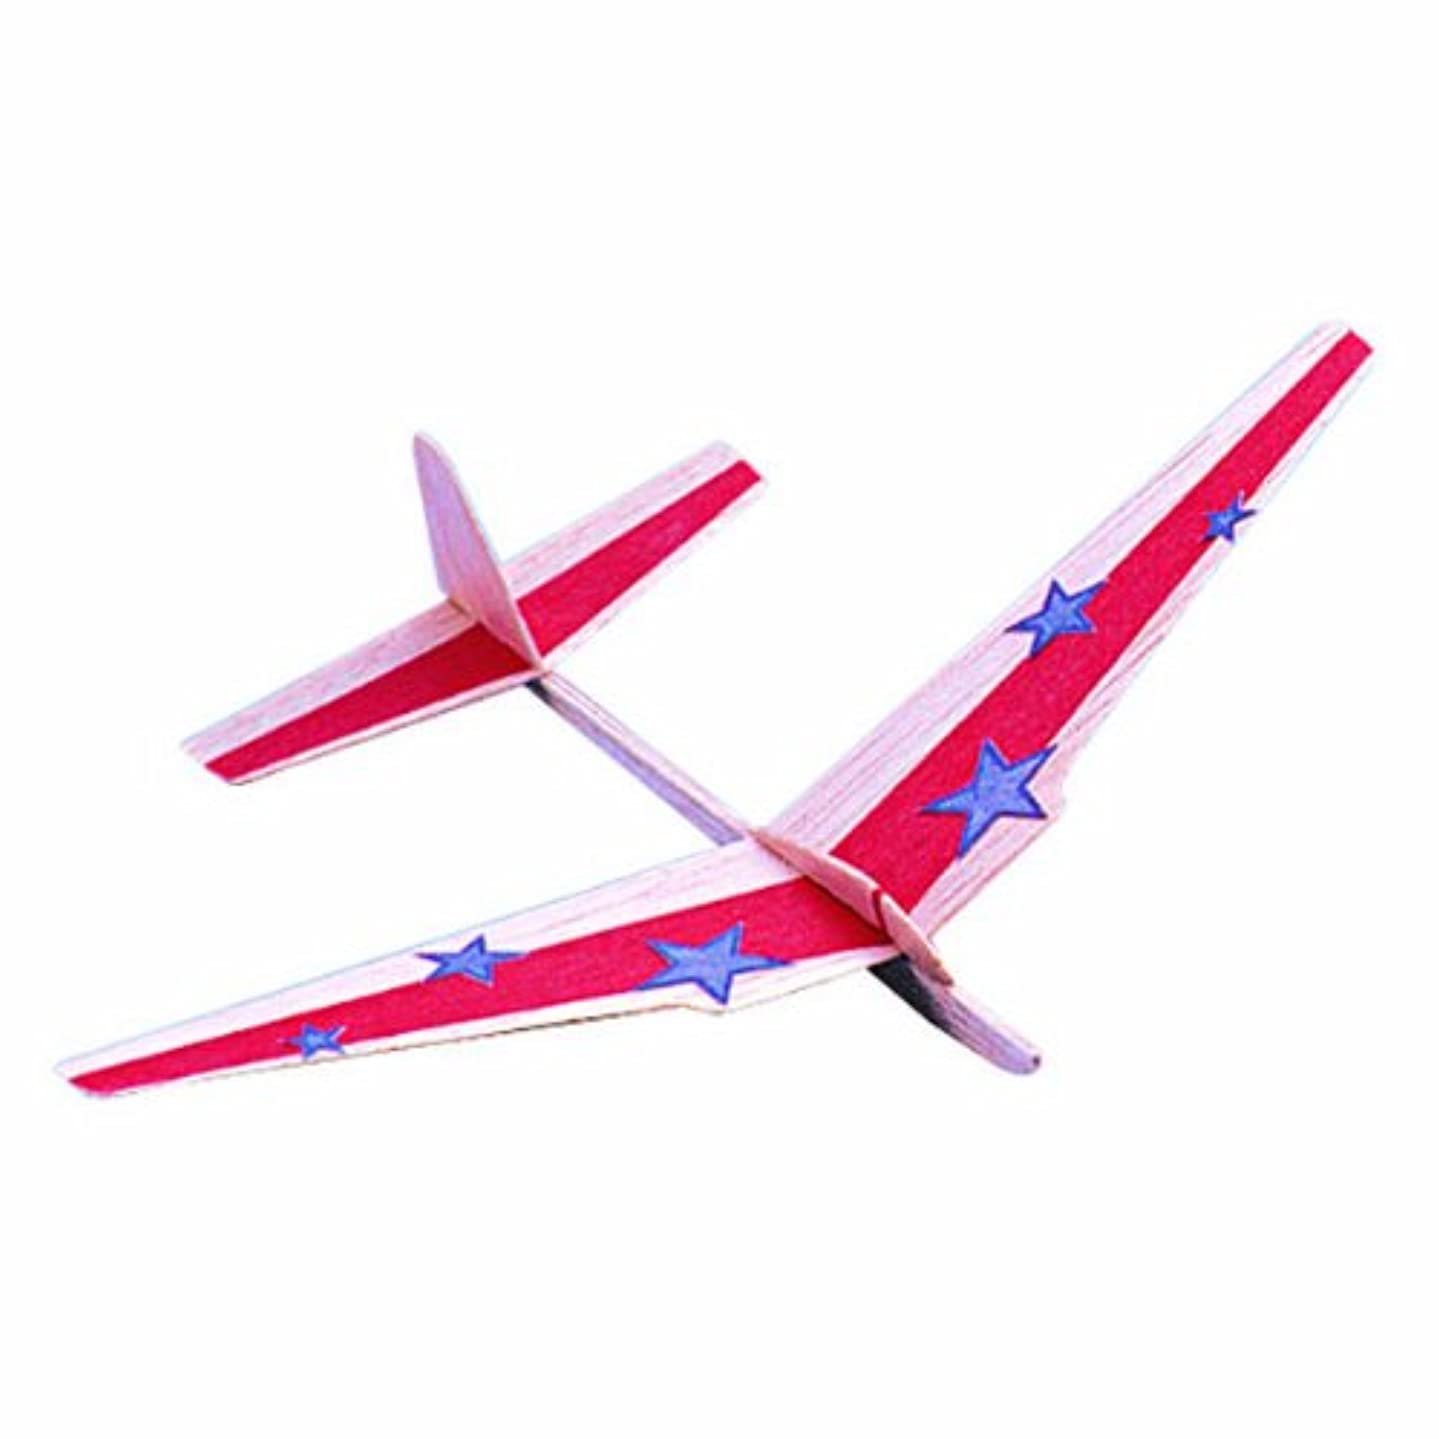 Midwest Products 505 70-Pack Aviation Education Crafts Kit for Grades 1-6, Start Glider